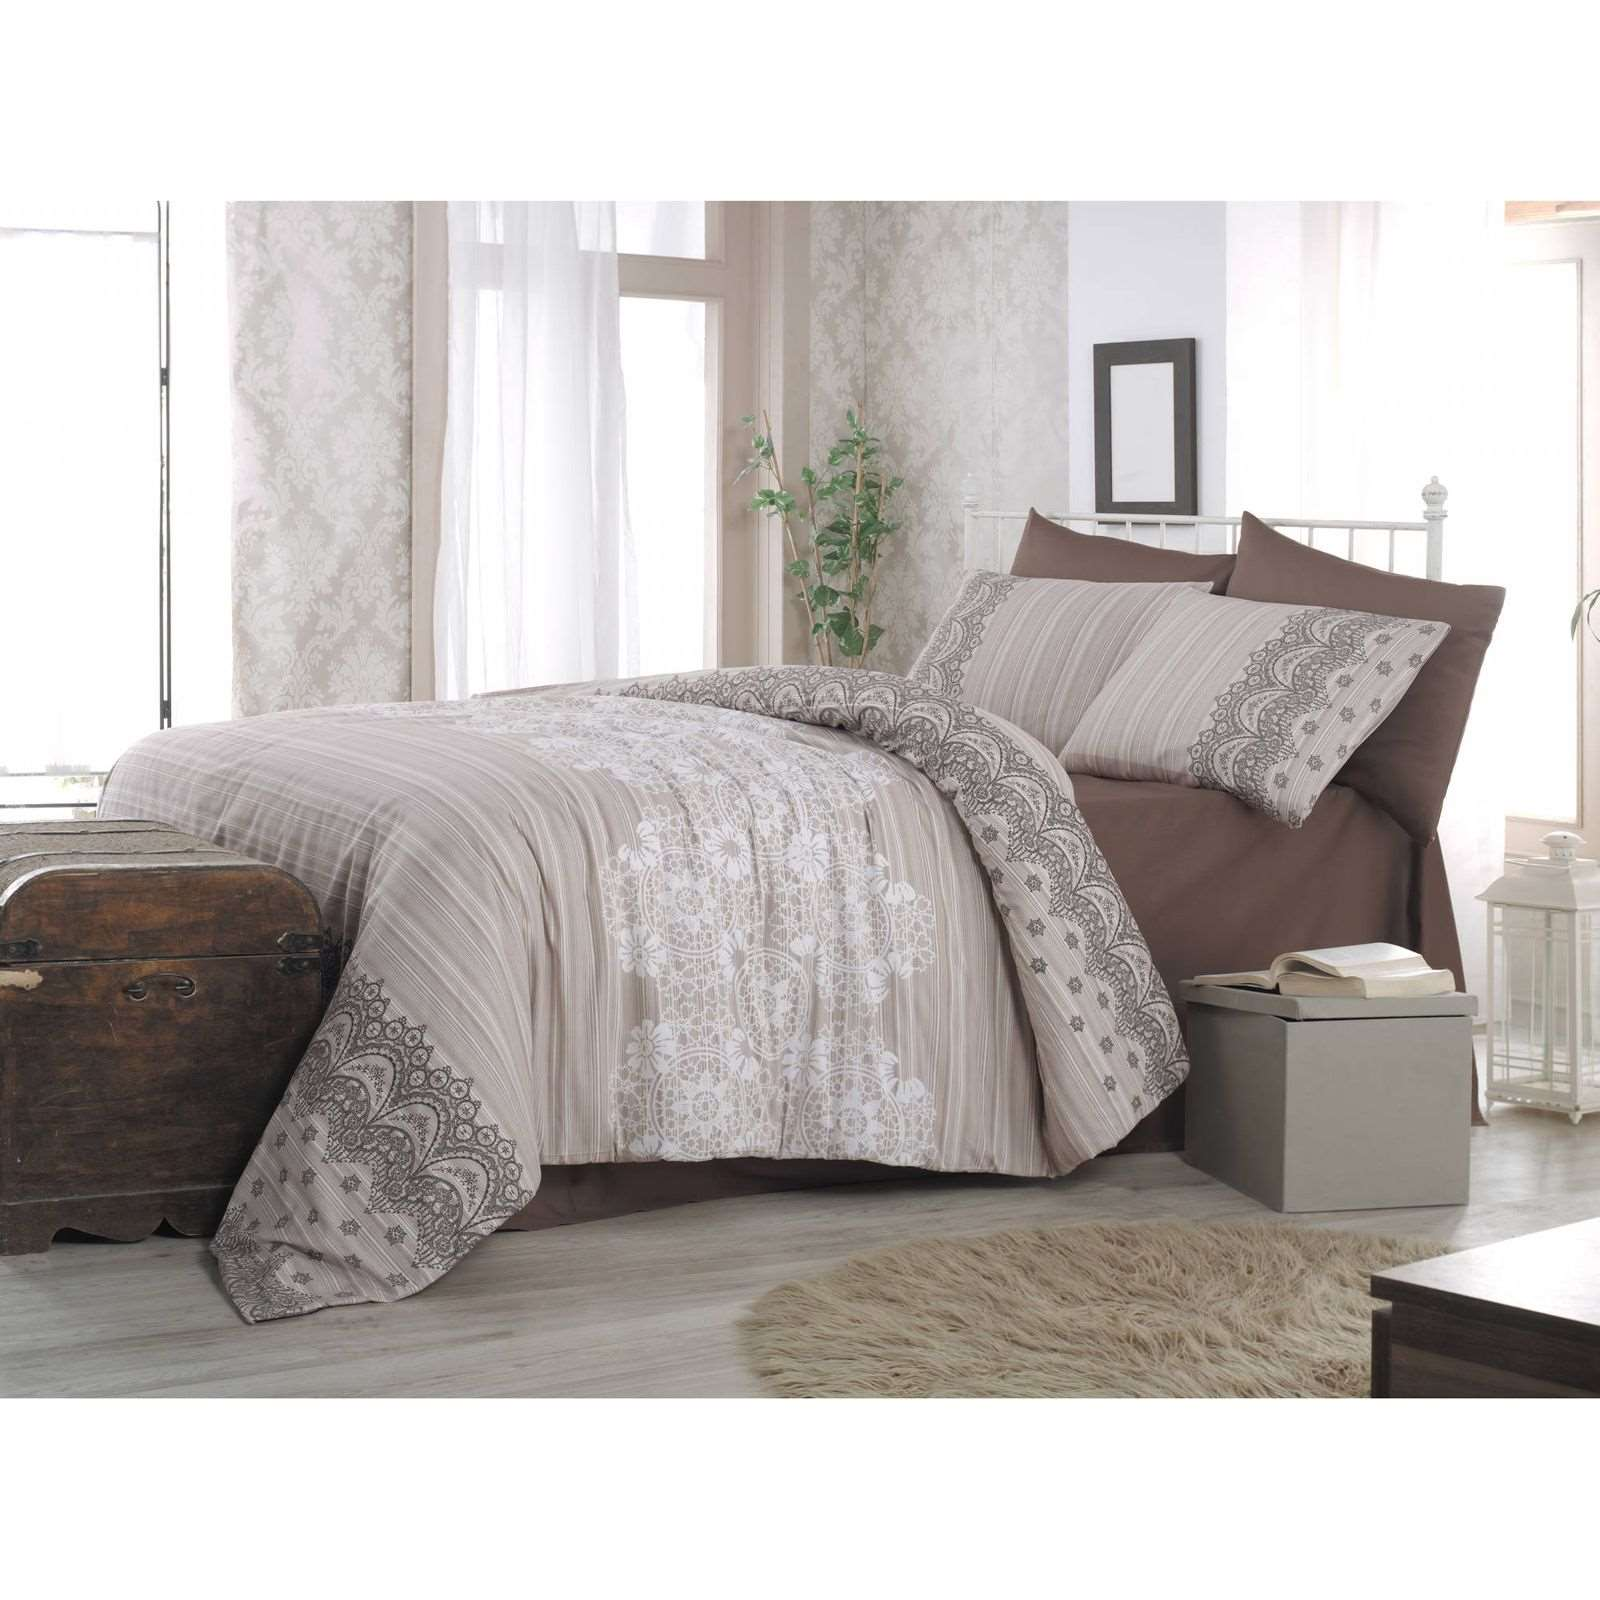 victoria home parure de lit beige brandalley. Black Bedroom Furniture Sets. Home Design Ideas